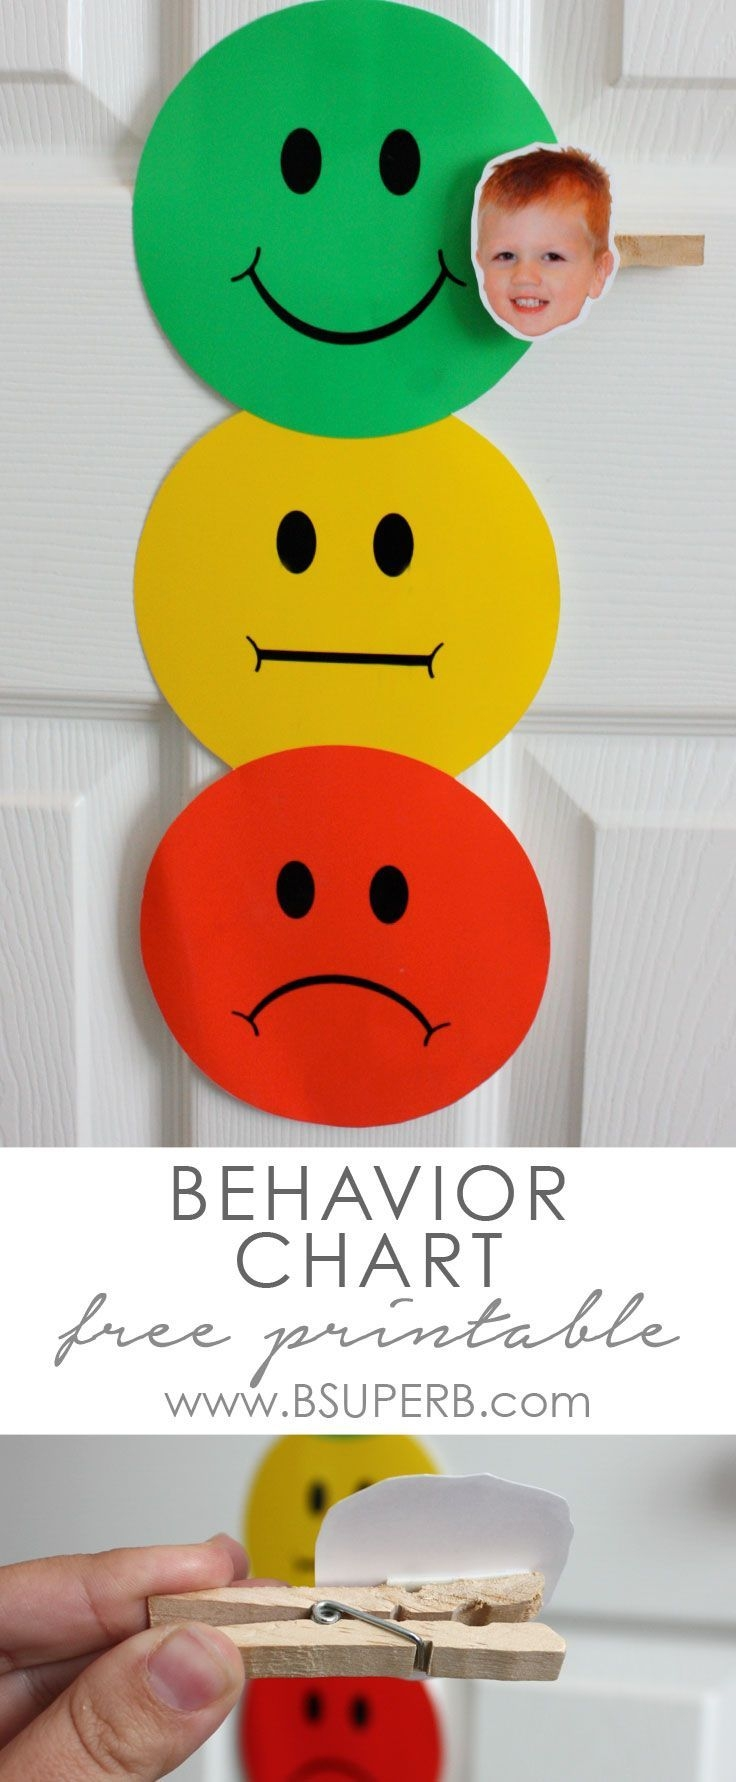 Toddler Behavior Chart B Superb | Behavior Chart